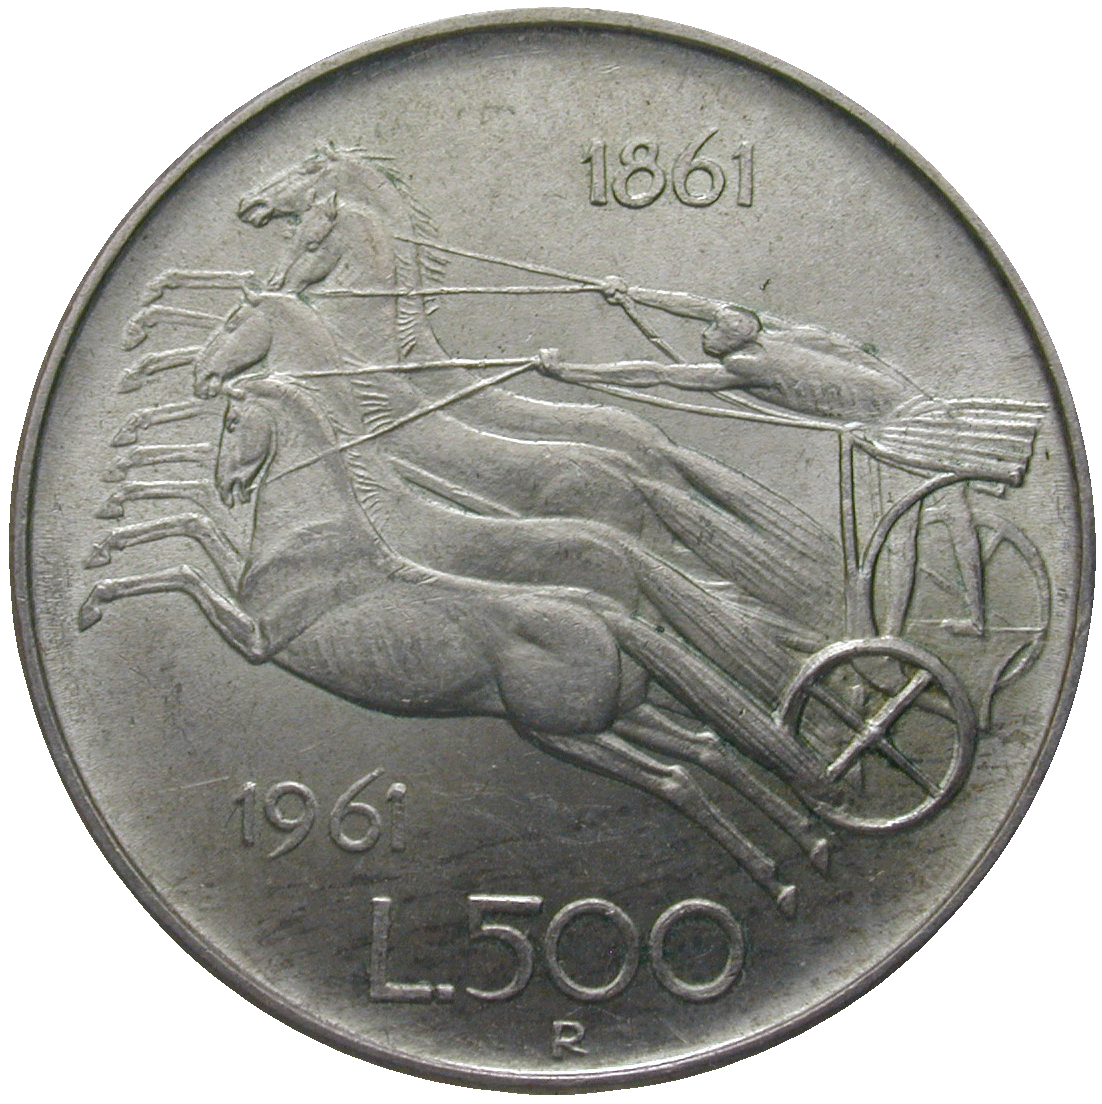 Republic of Italy, 500 Lire 1961 (reverse)